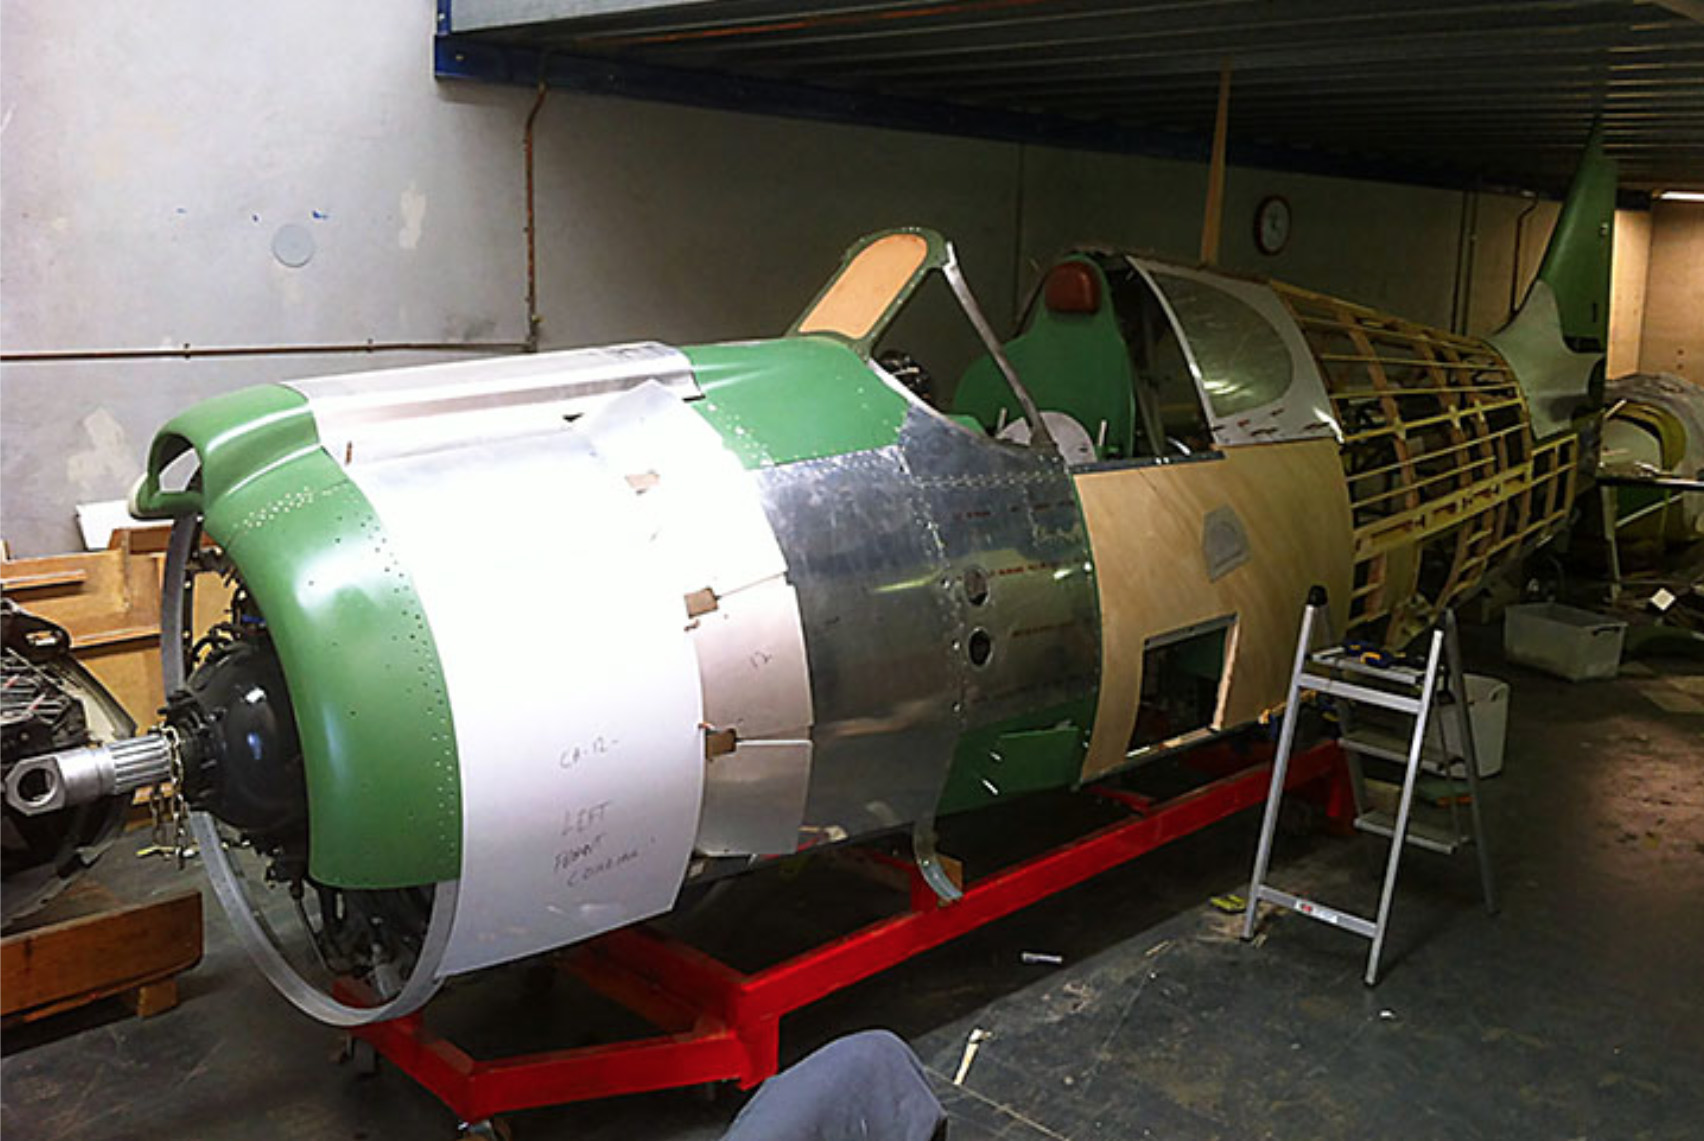 A46-90s fuselage following restoration. (photo by John Parker)